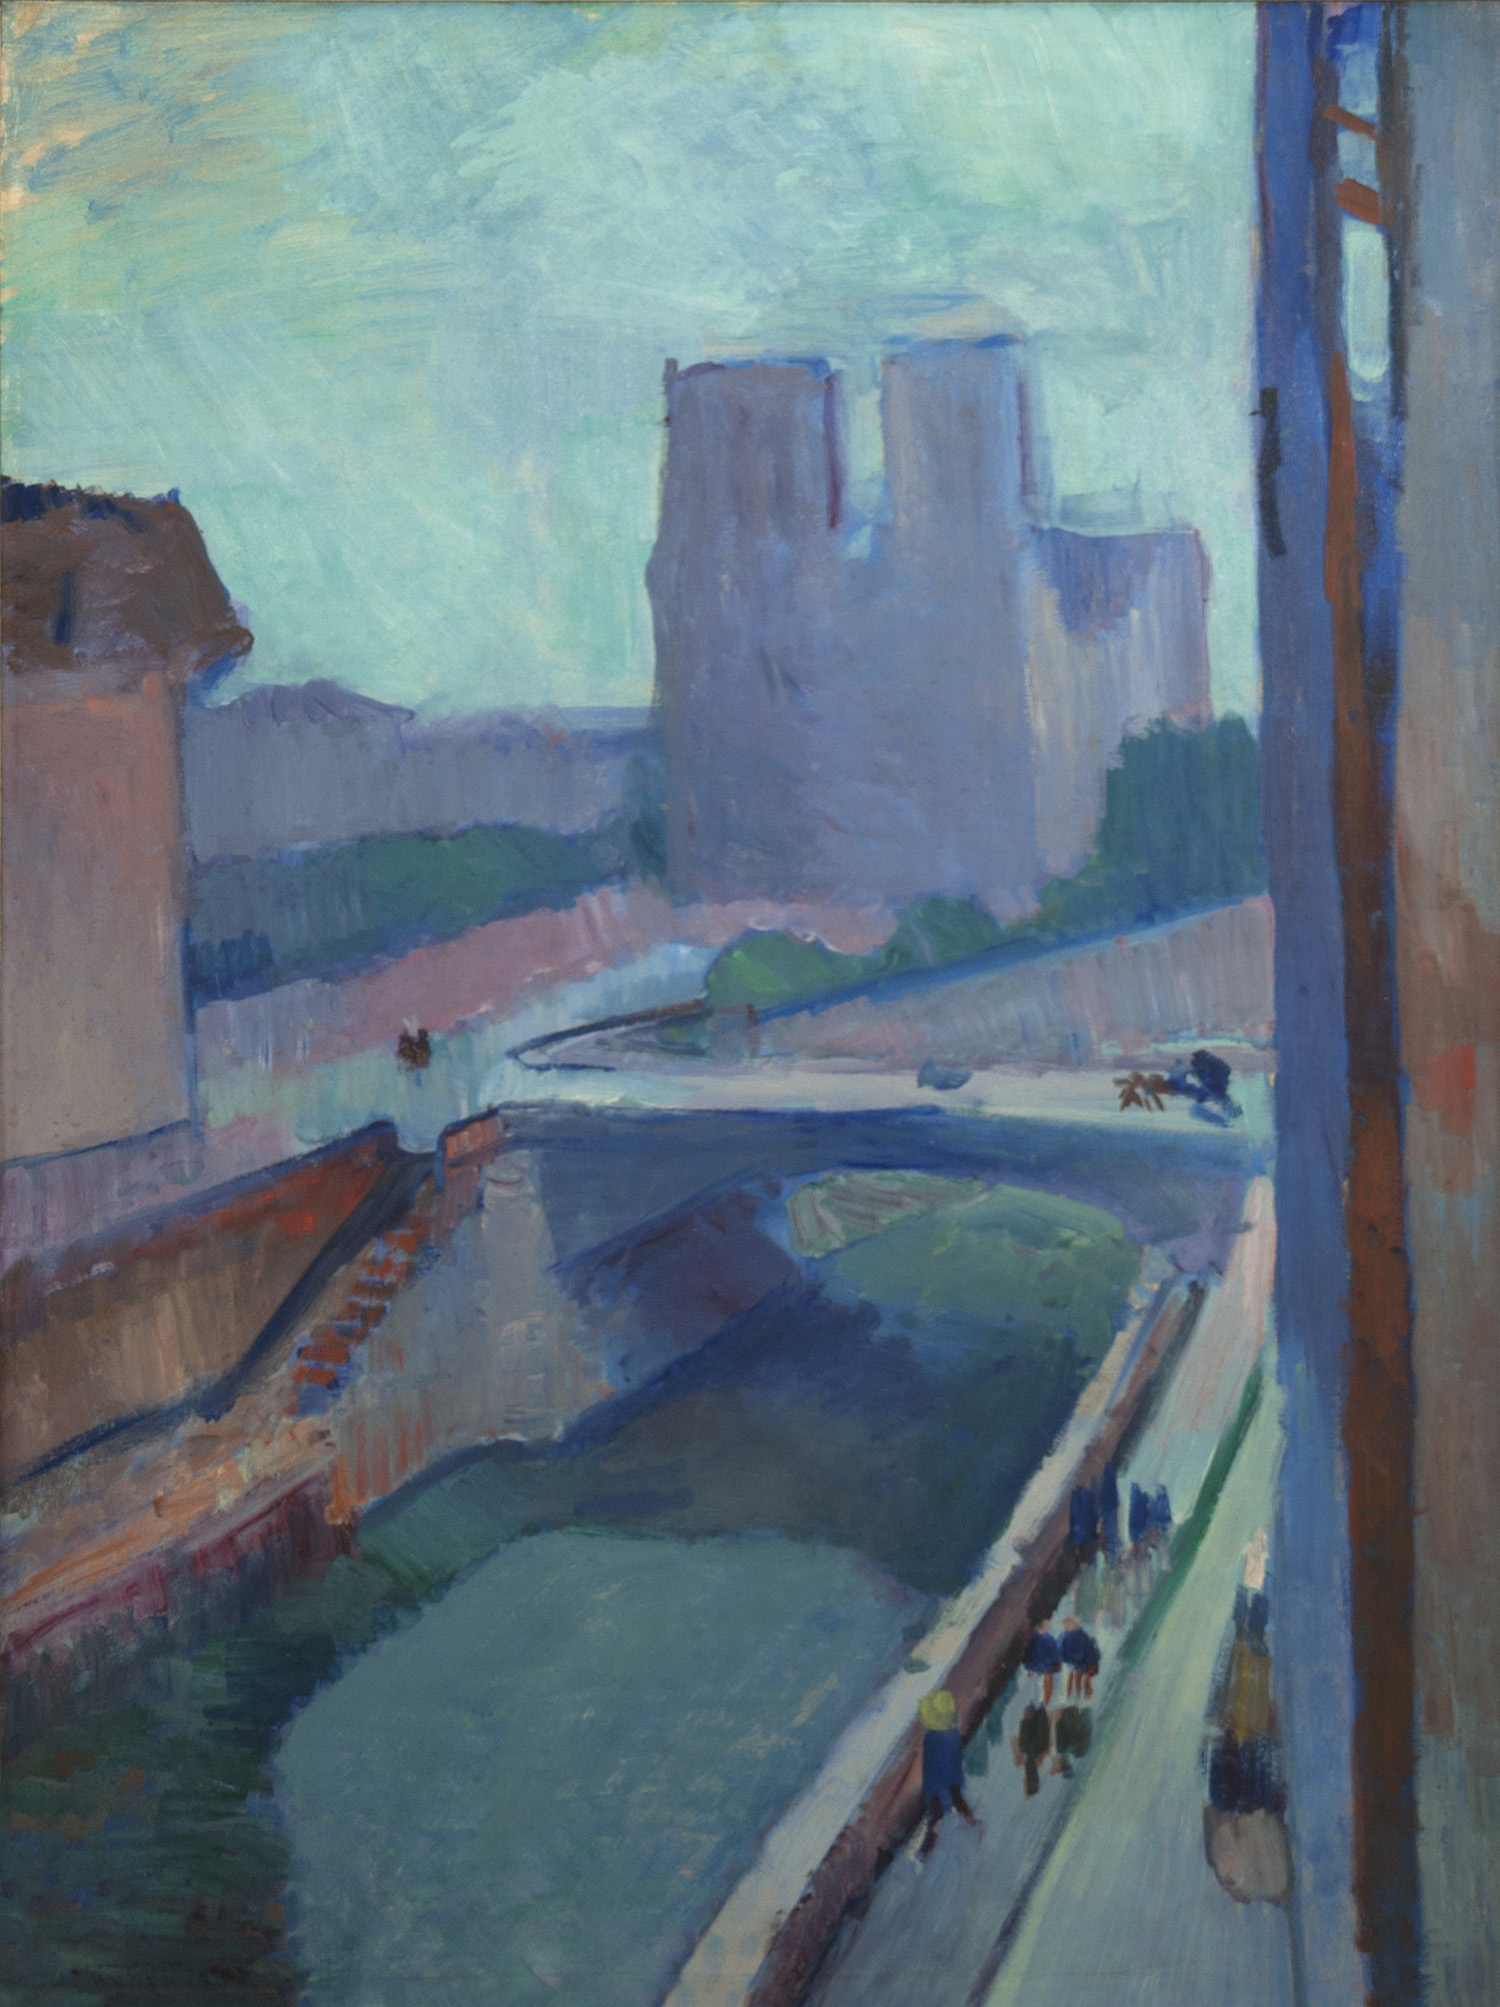 Henri Matisse, Notre Dame, A Late Afternoon, 1902; oil on paper mounted on canvas; Collection Albright-Knox Art Gallery, Buffalo, New York, gift of Seymour H. Knox, Jr; © Succession H. Matisse / Artists Rights Society (ARS), New York.